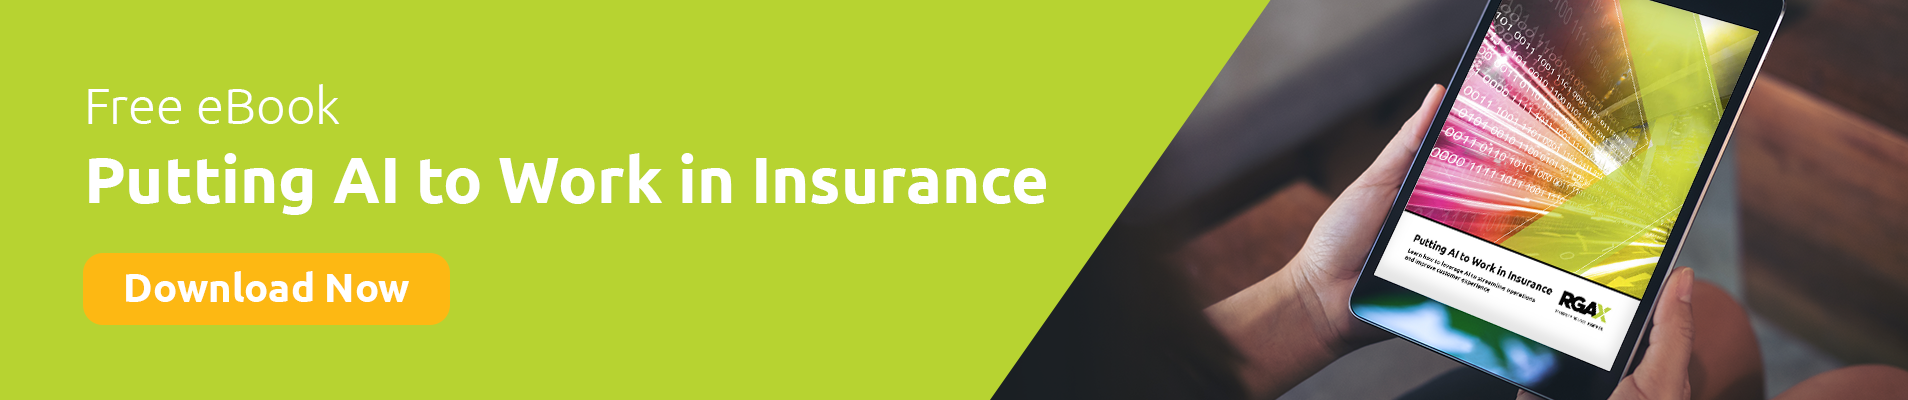 Putting AI to Work in Insurance - Download eBook